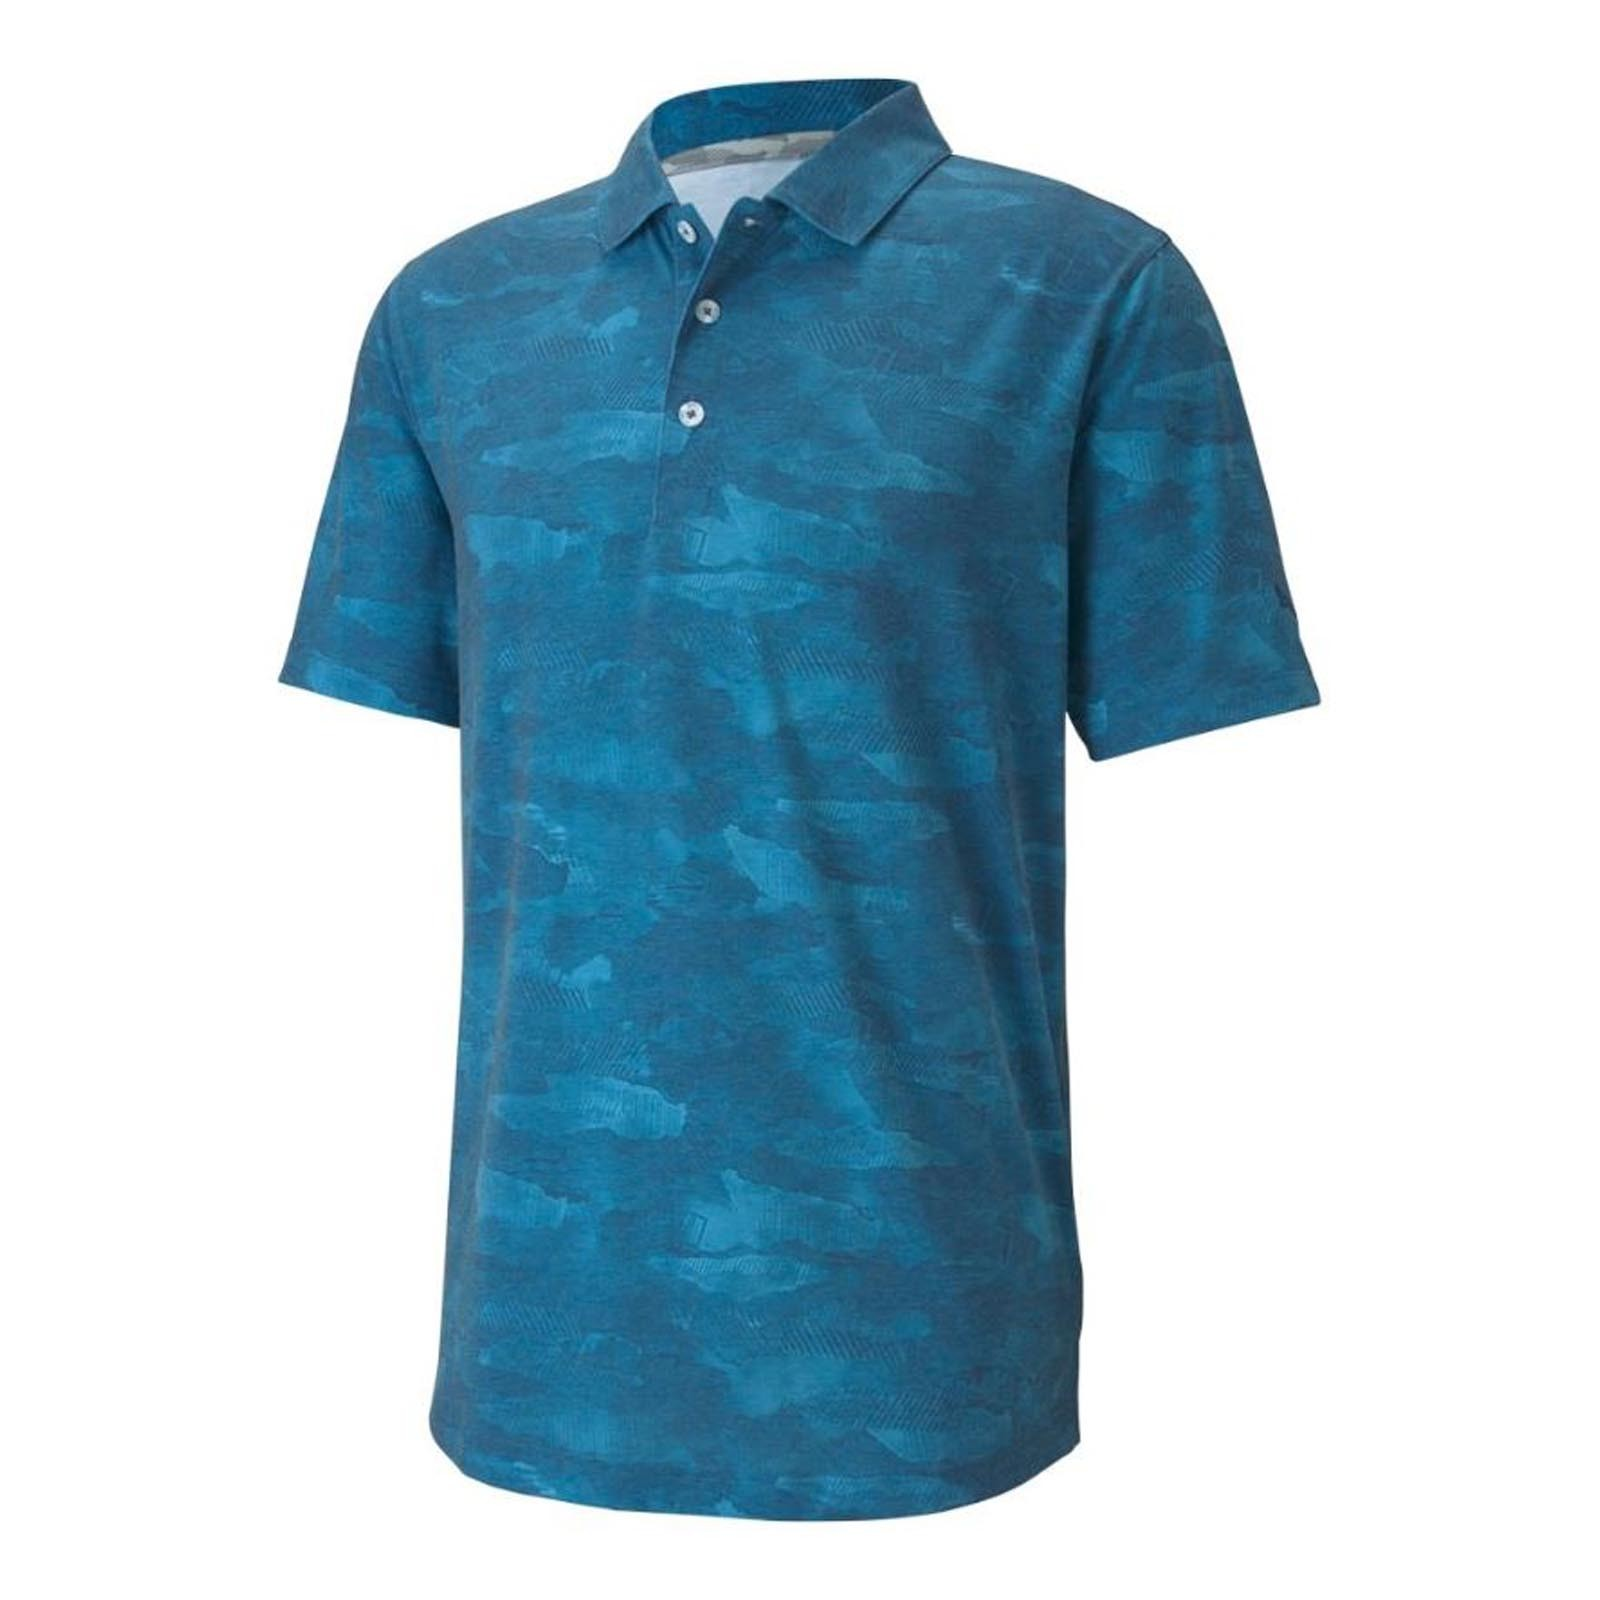 Puma Solarized Camo Polo Shirts